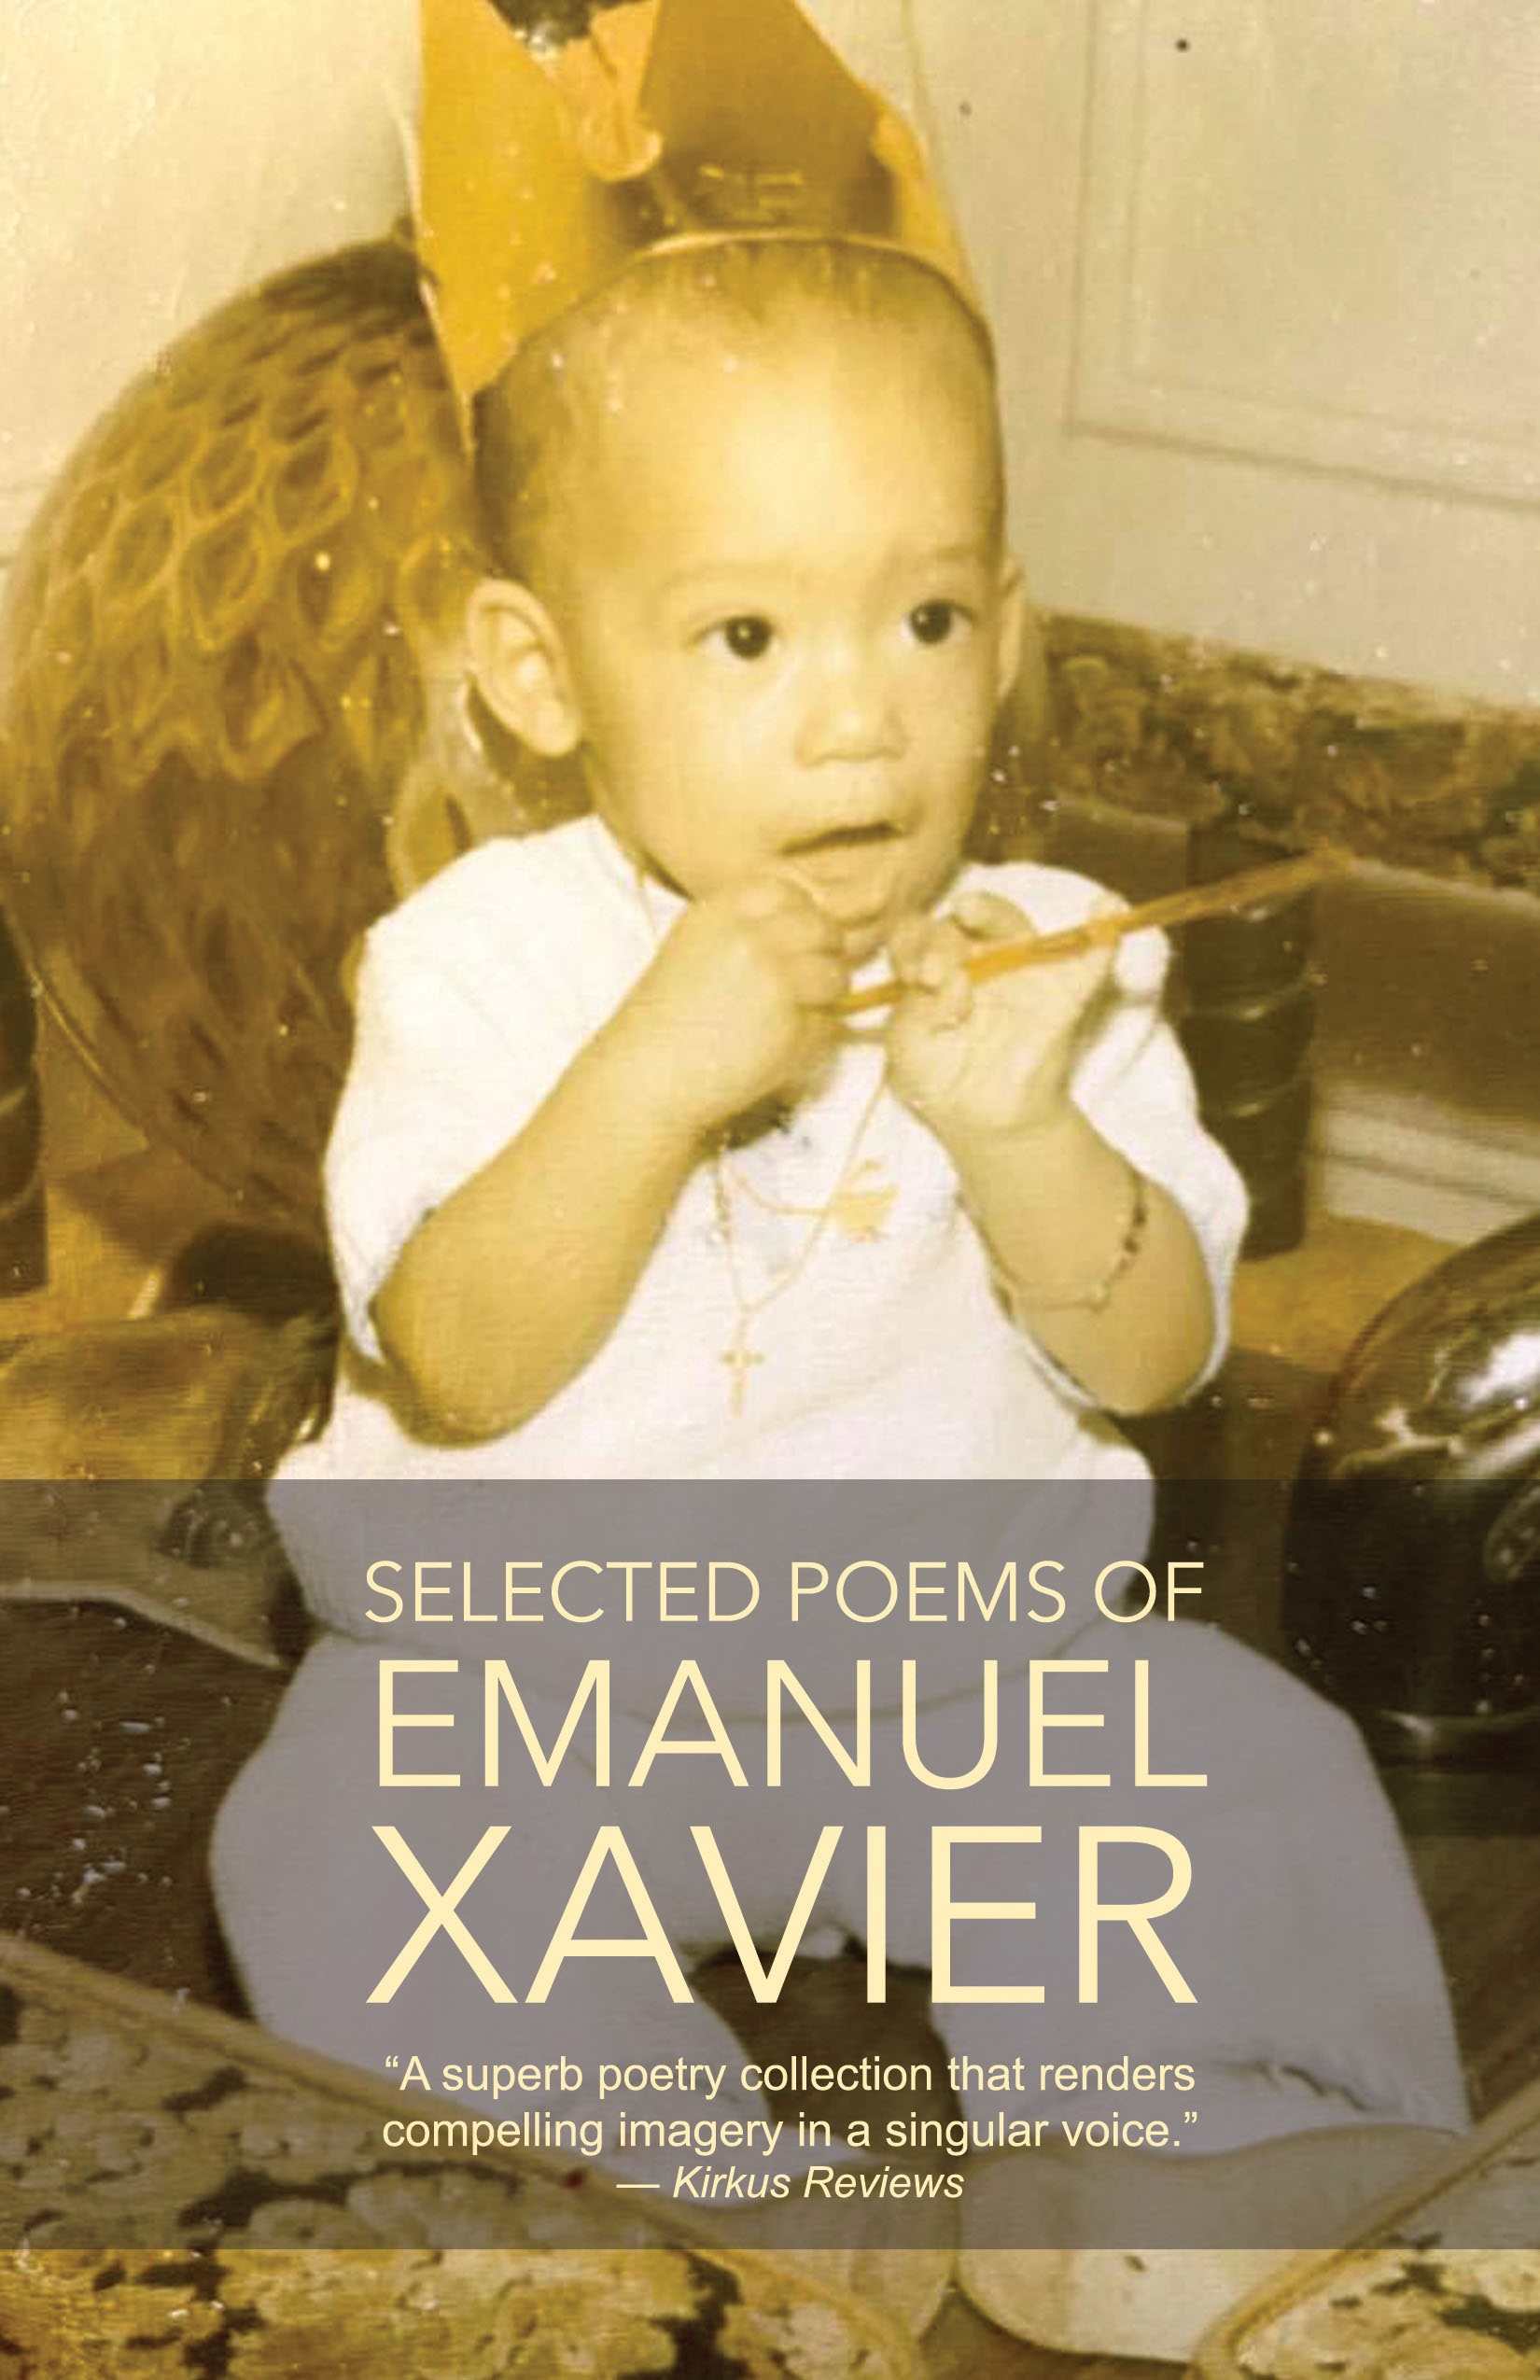 Radiance on The Other Side of Struggle: Selected Poems of Emanuel Xavier image